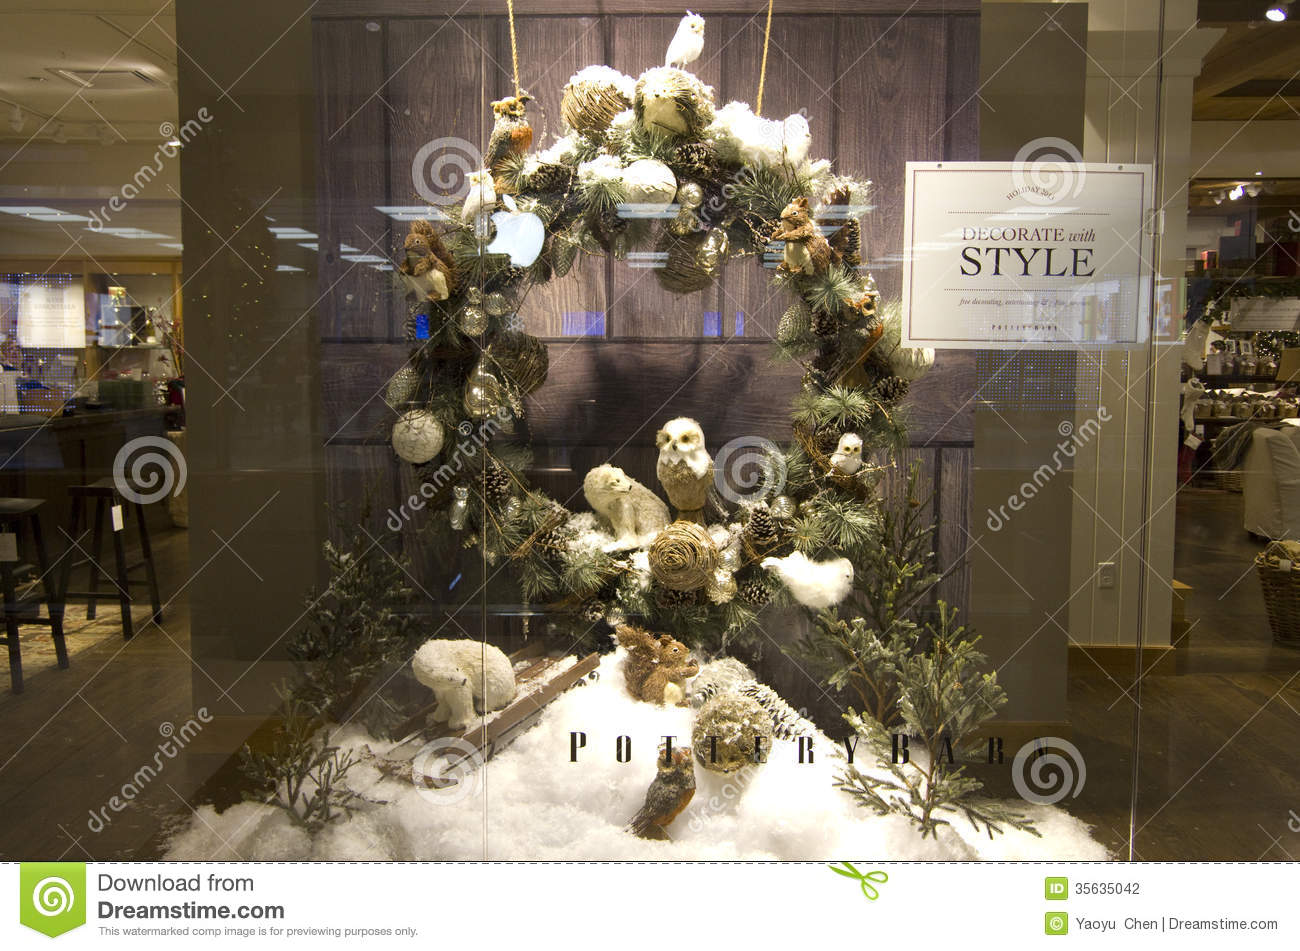 Thanksgiving christmas decorations home deco store window for Deco fenetre noel